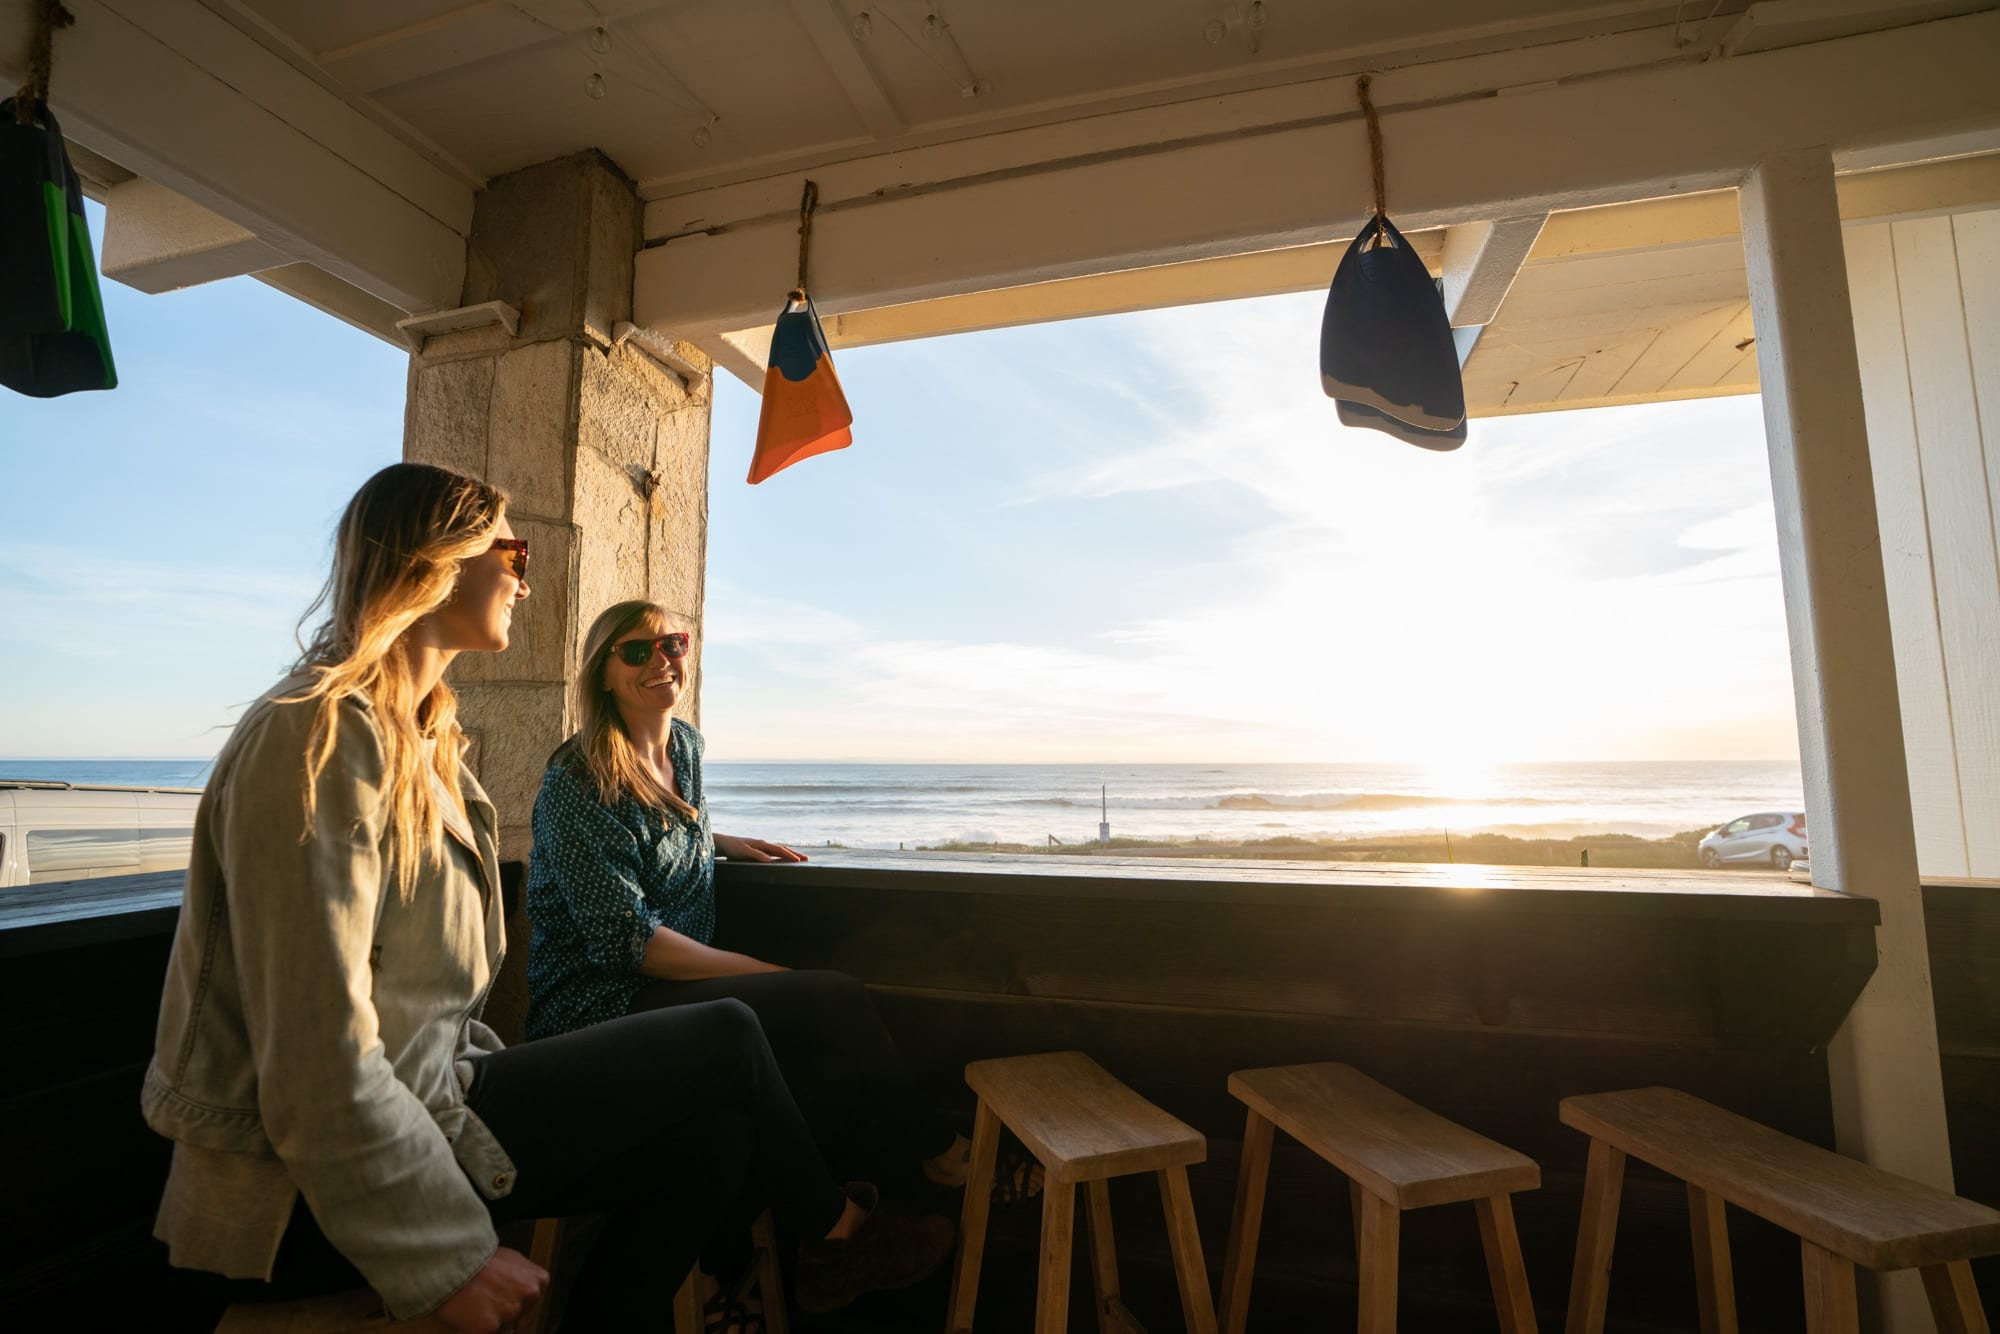 Hotel review of the Cambria Beach Lodge on the central California coast, from rooms to amenities and the best things to do around town.